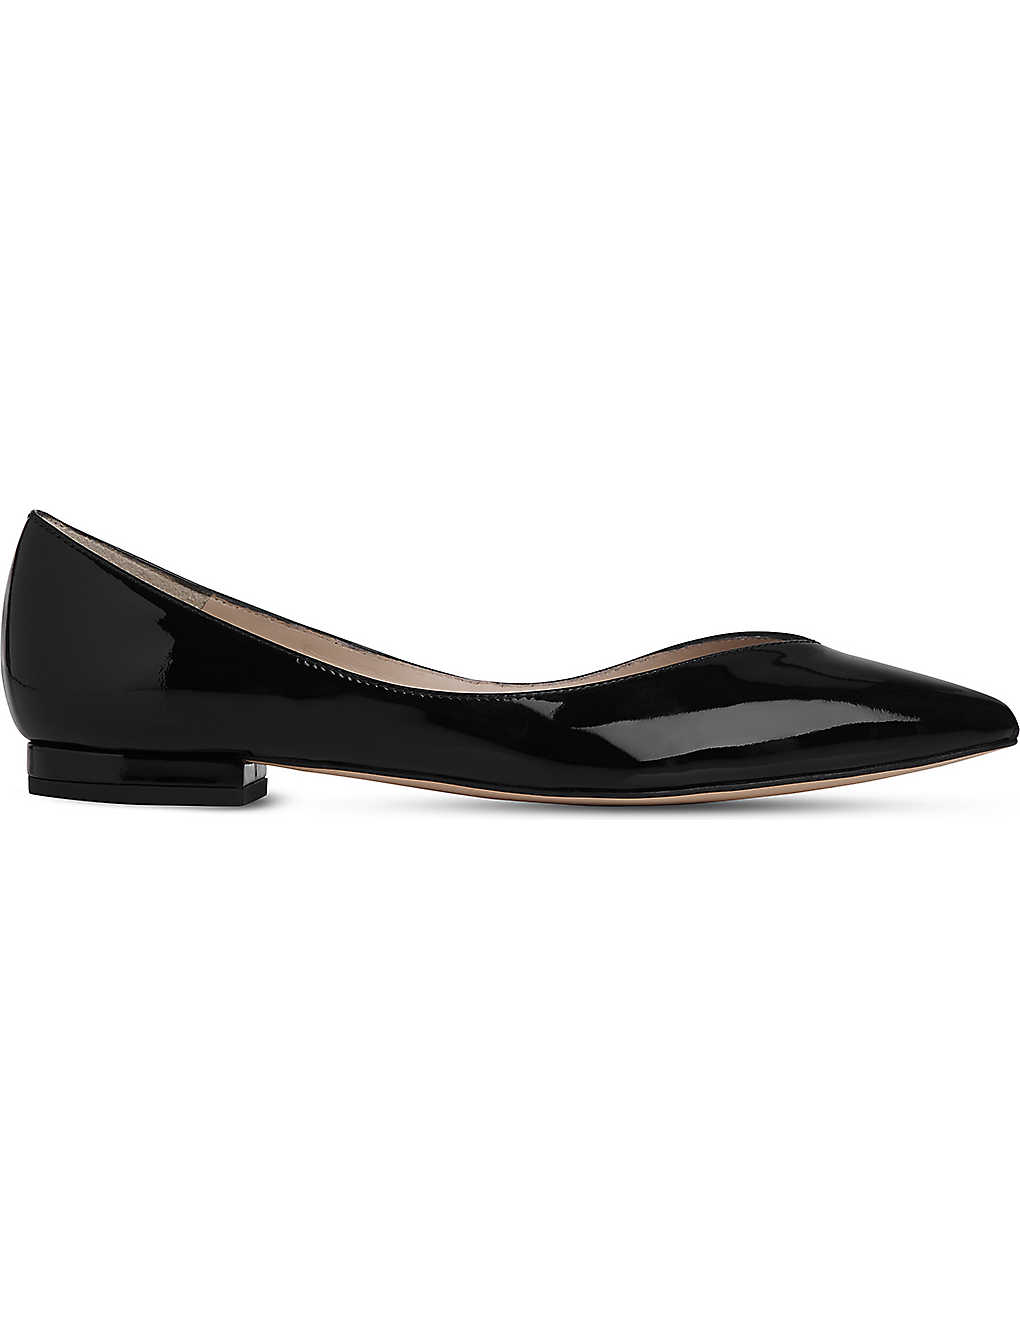 dca3b769dee9 LK BENNETT - Luisa pointed patent-leather flats